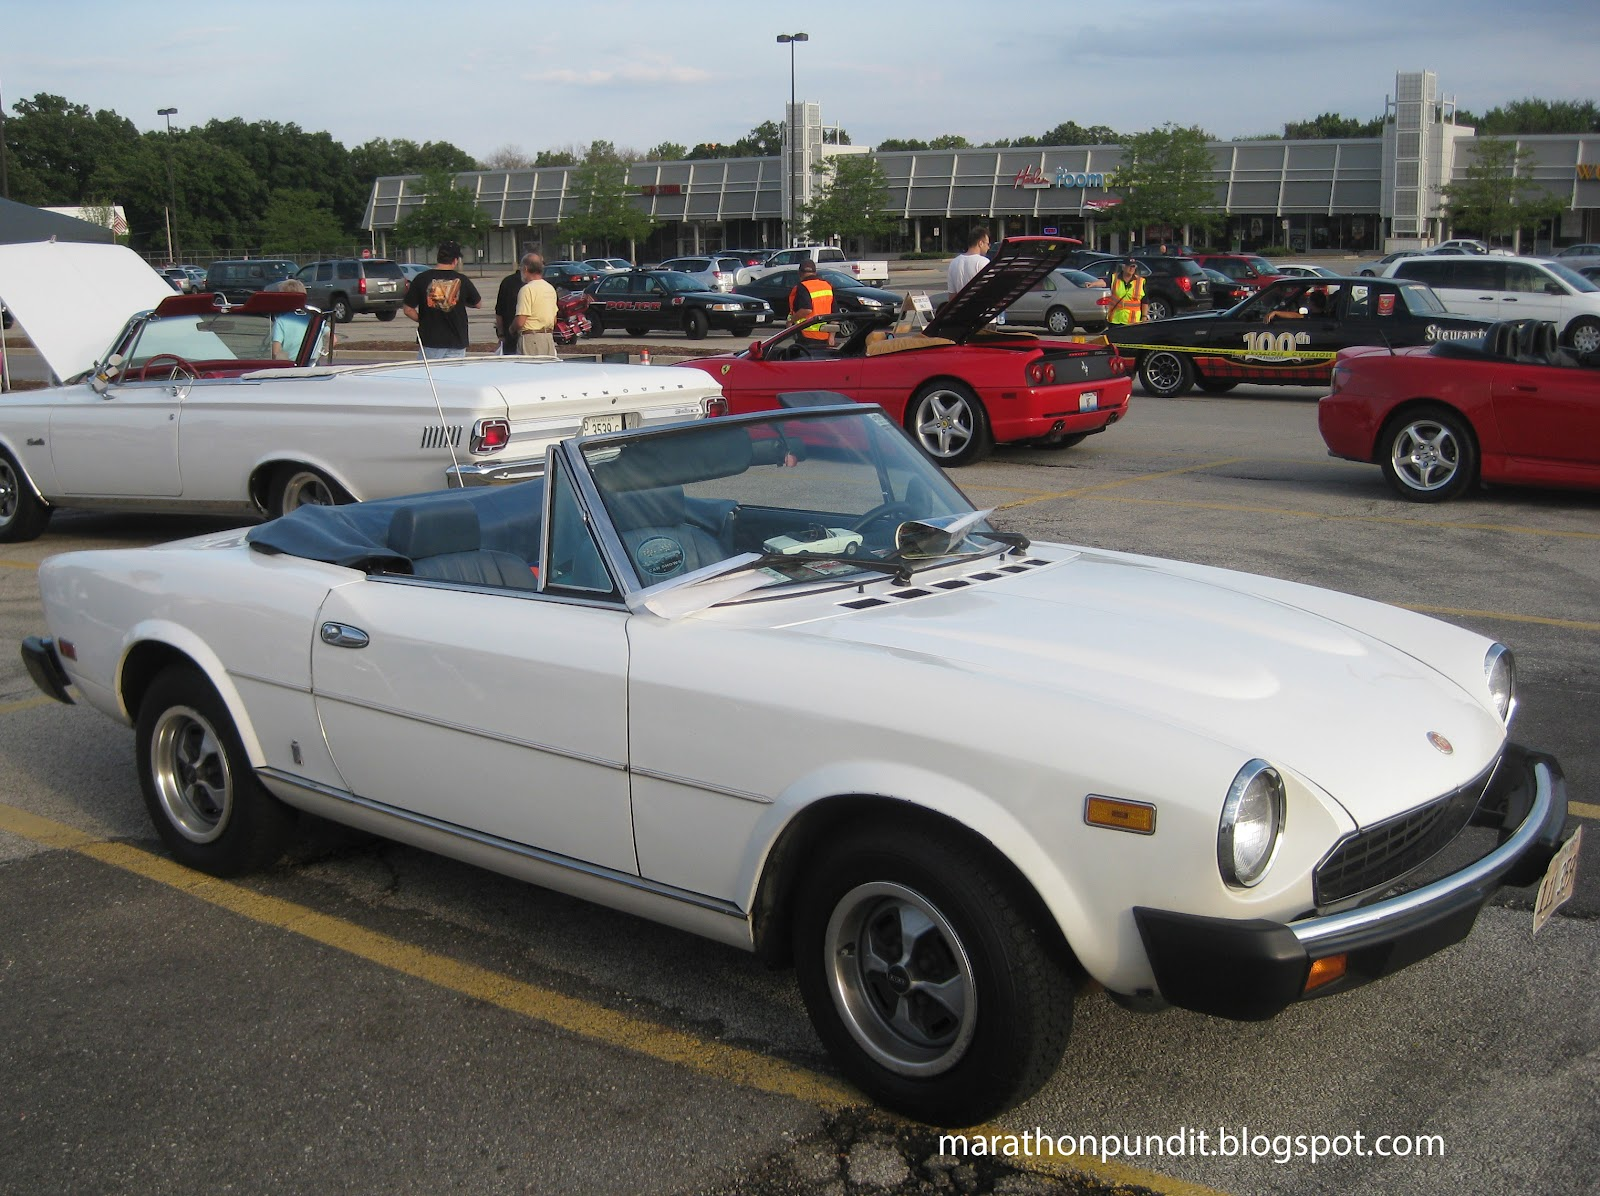 Marathon Pundit Photos Morton Grove Classic Car Show 7 27 12